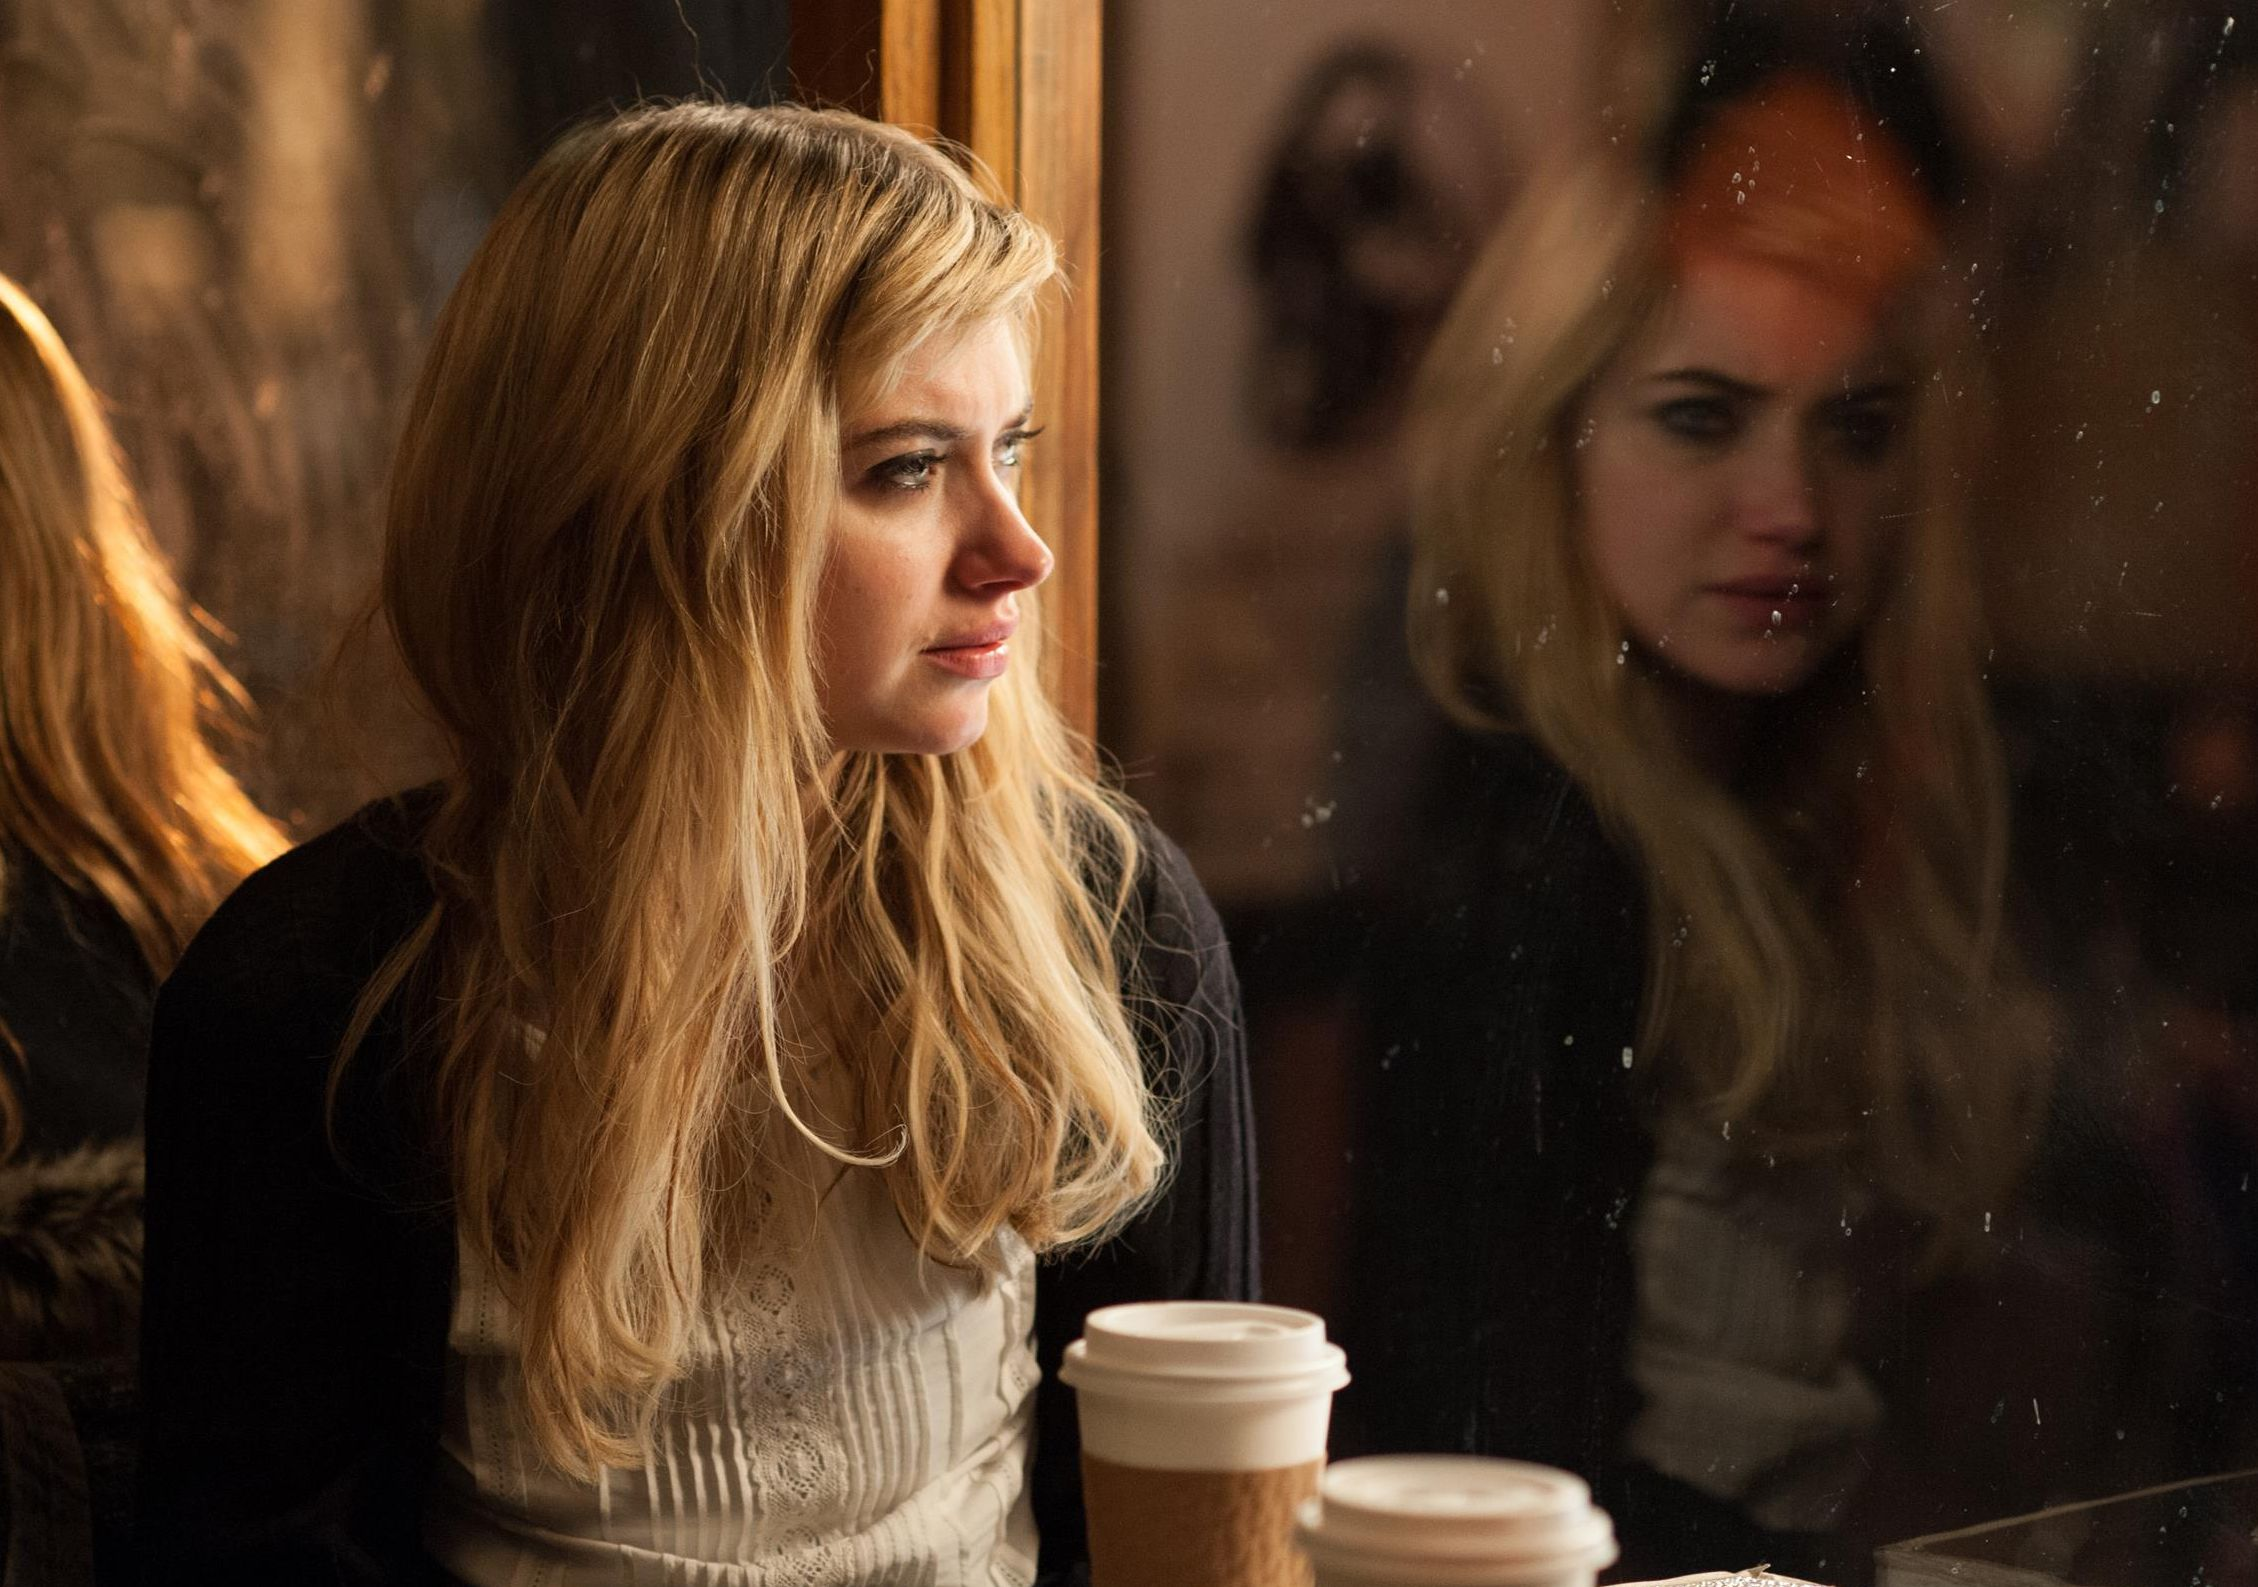 Imogen Poots in That Awkward Moment